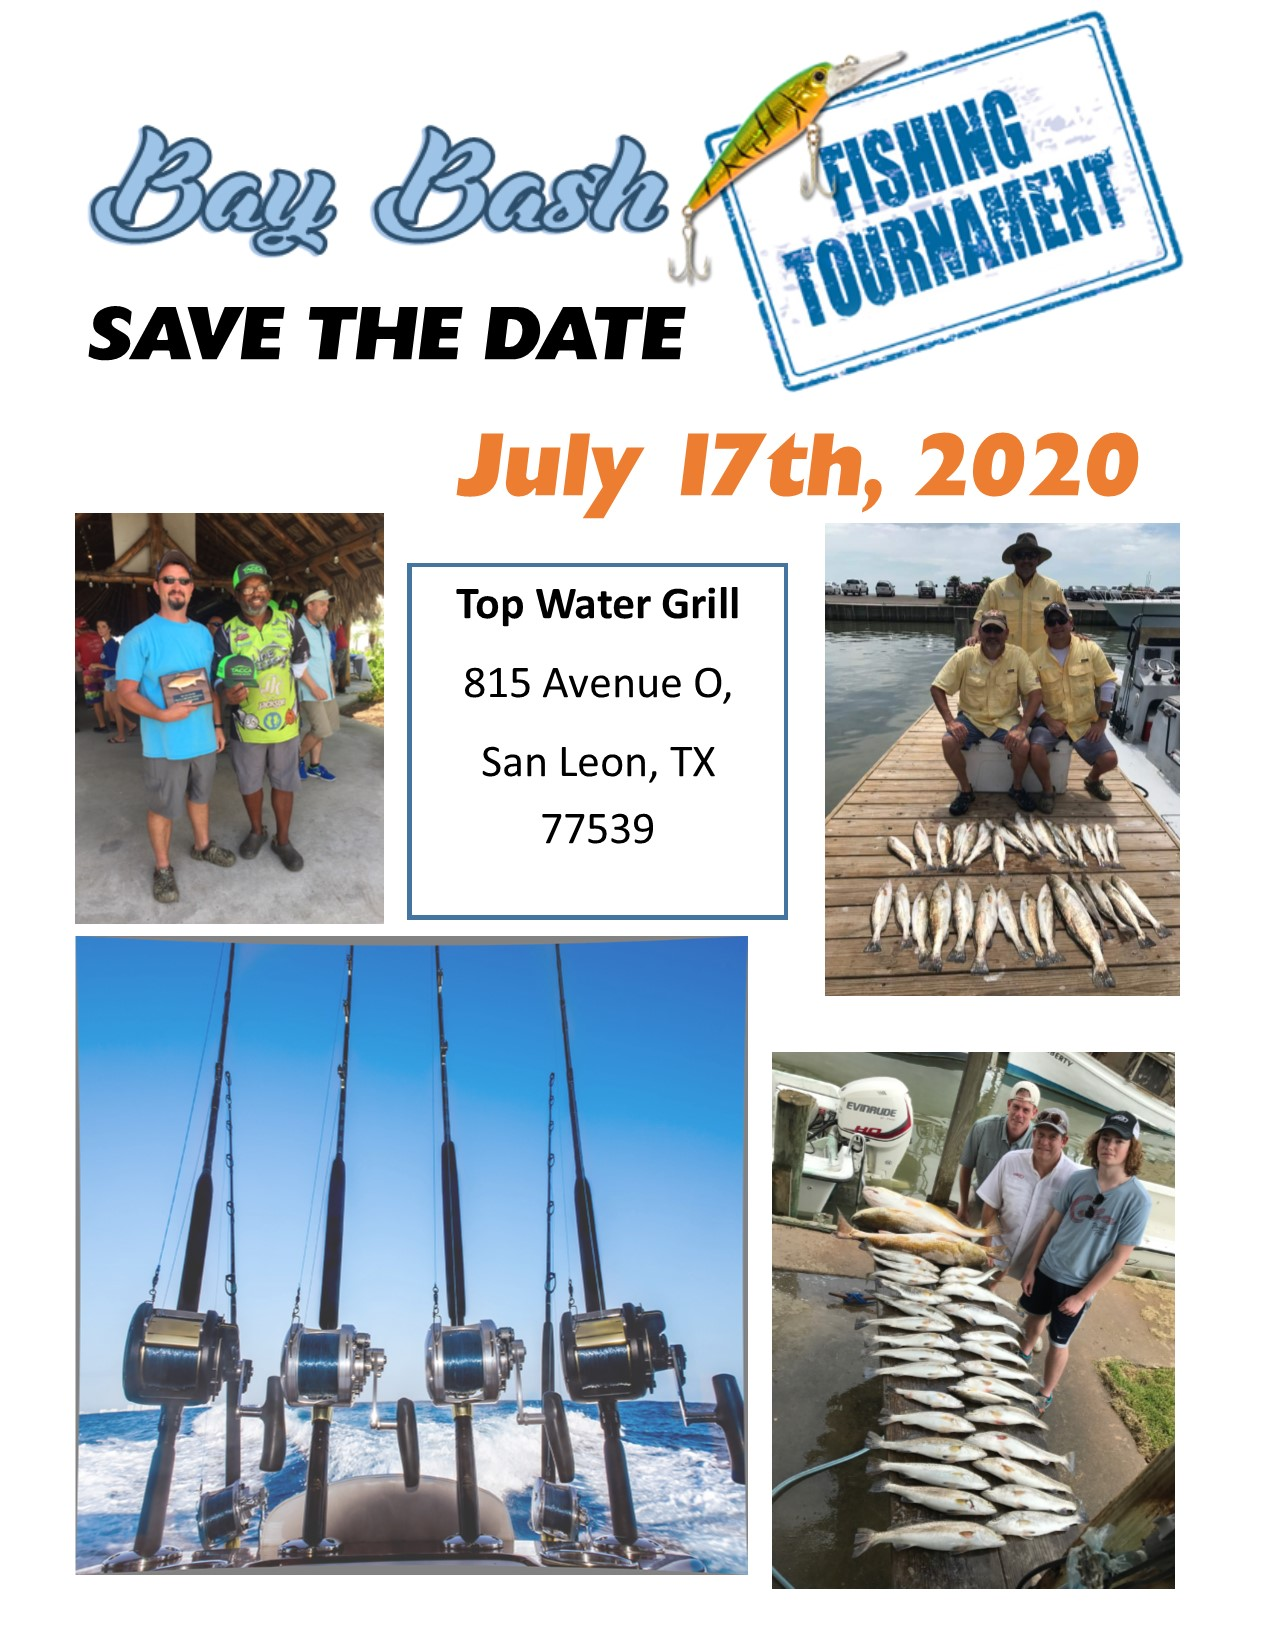 Bay Bash Fishing 2020